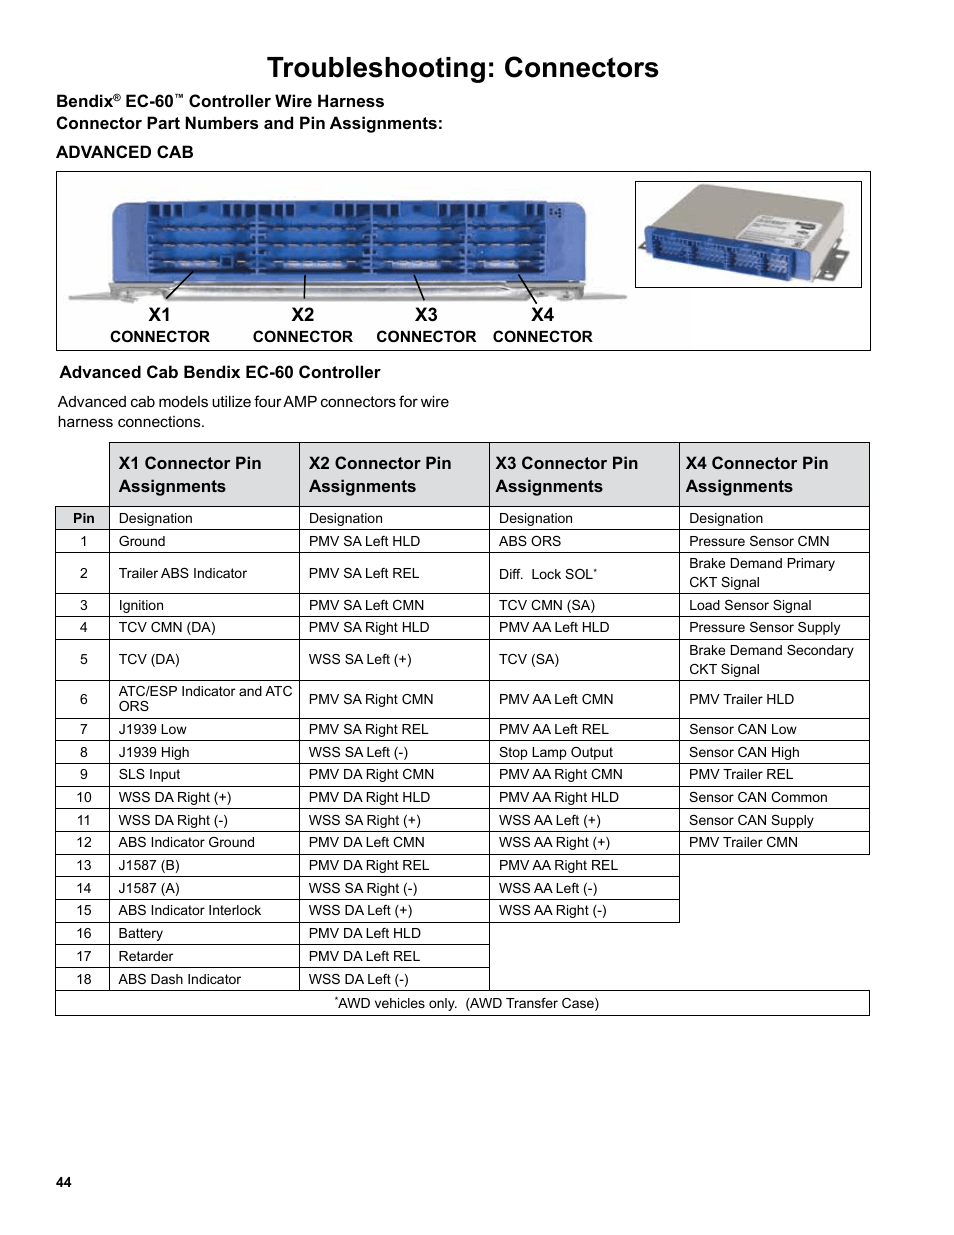 hight resolution of troubleshooting connectors bendix commercial vehicle systems ec 60 esp controllers adv user manual page 44 60